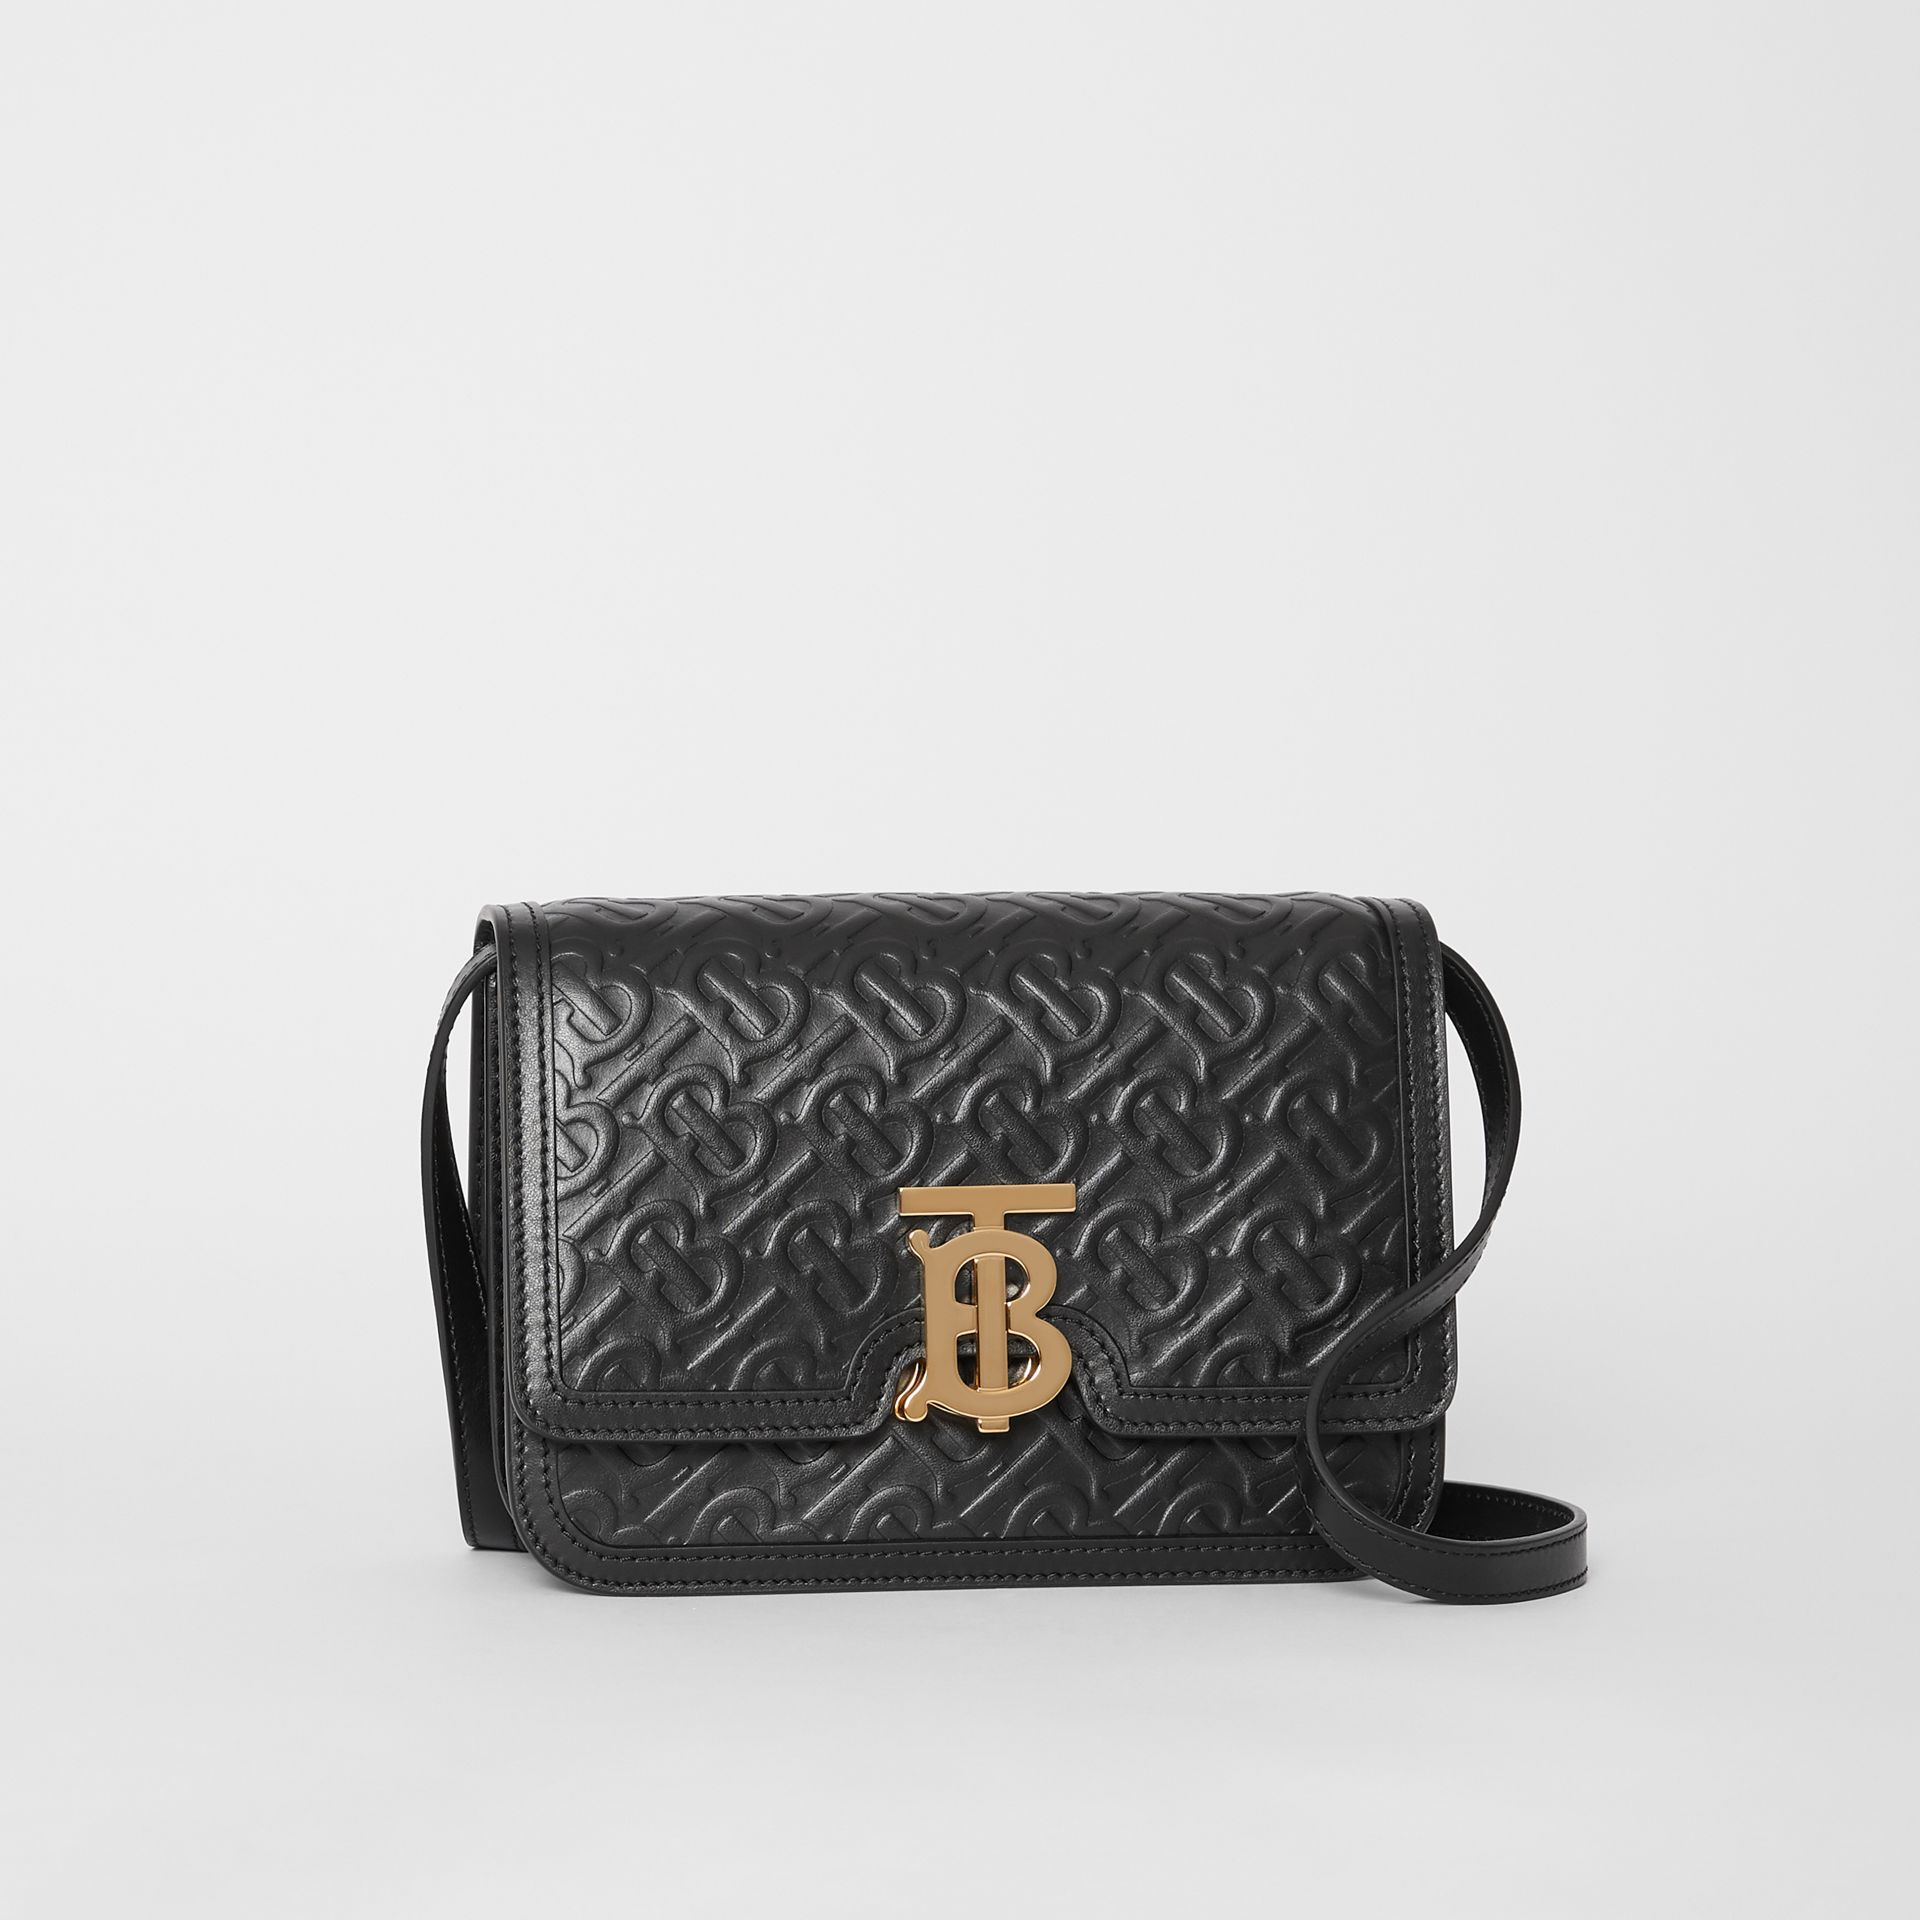 Small Monogram Leather TB Bag in Black - Women | Burberry - gallery image 6